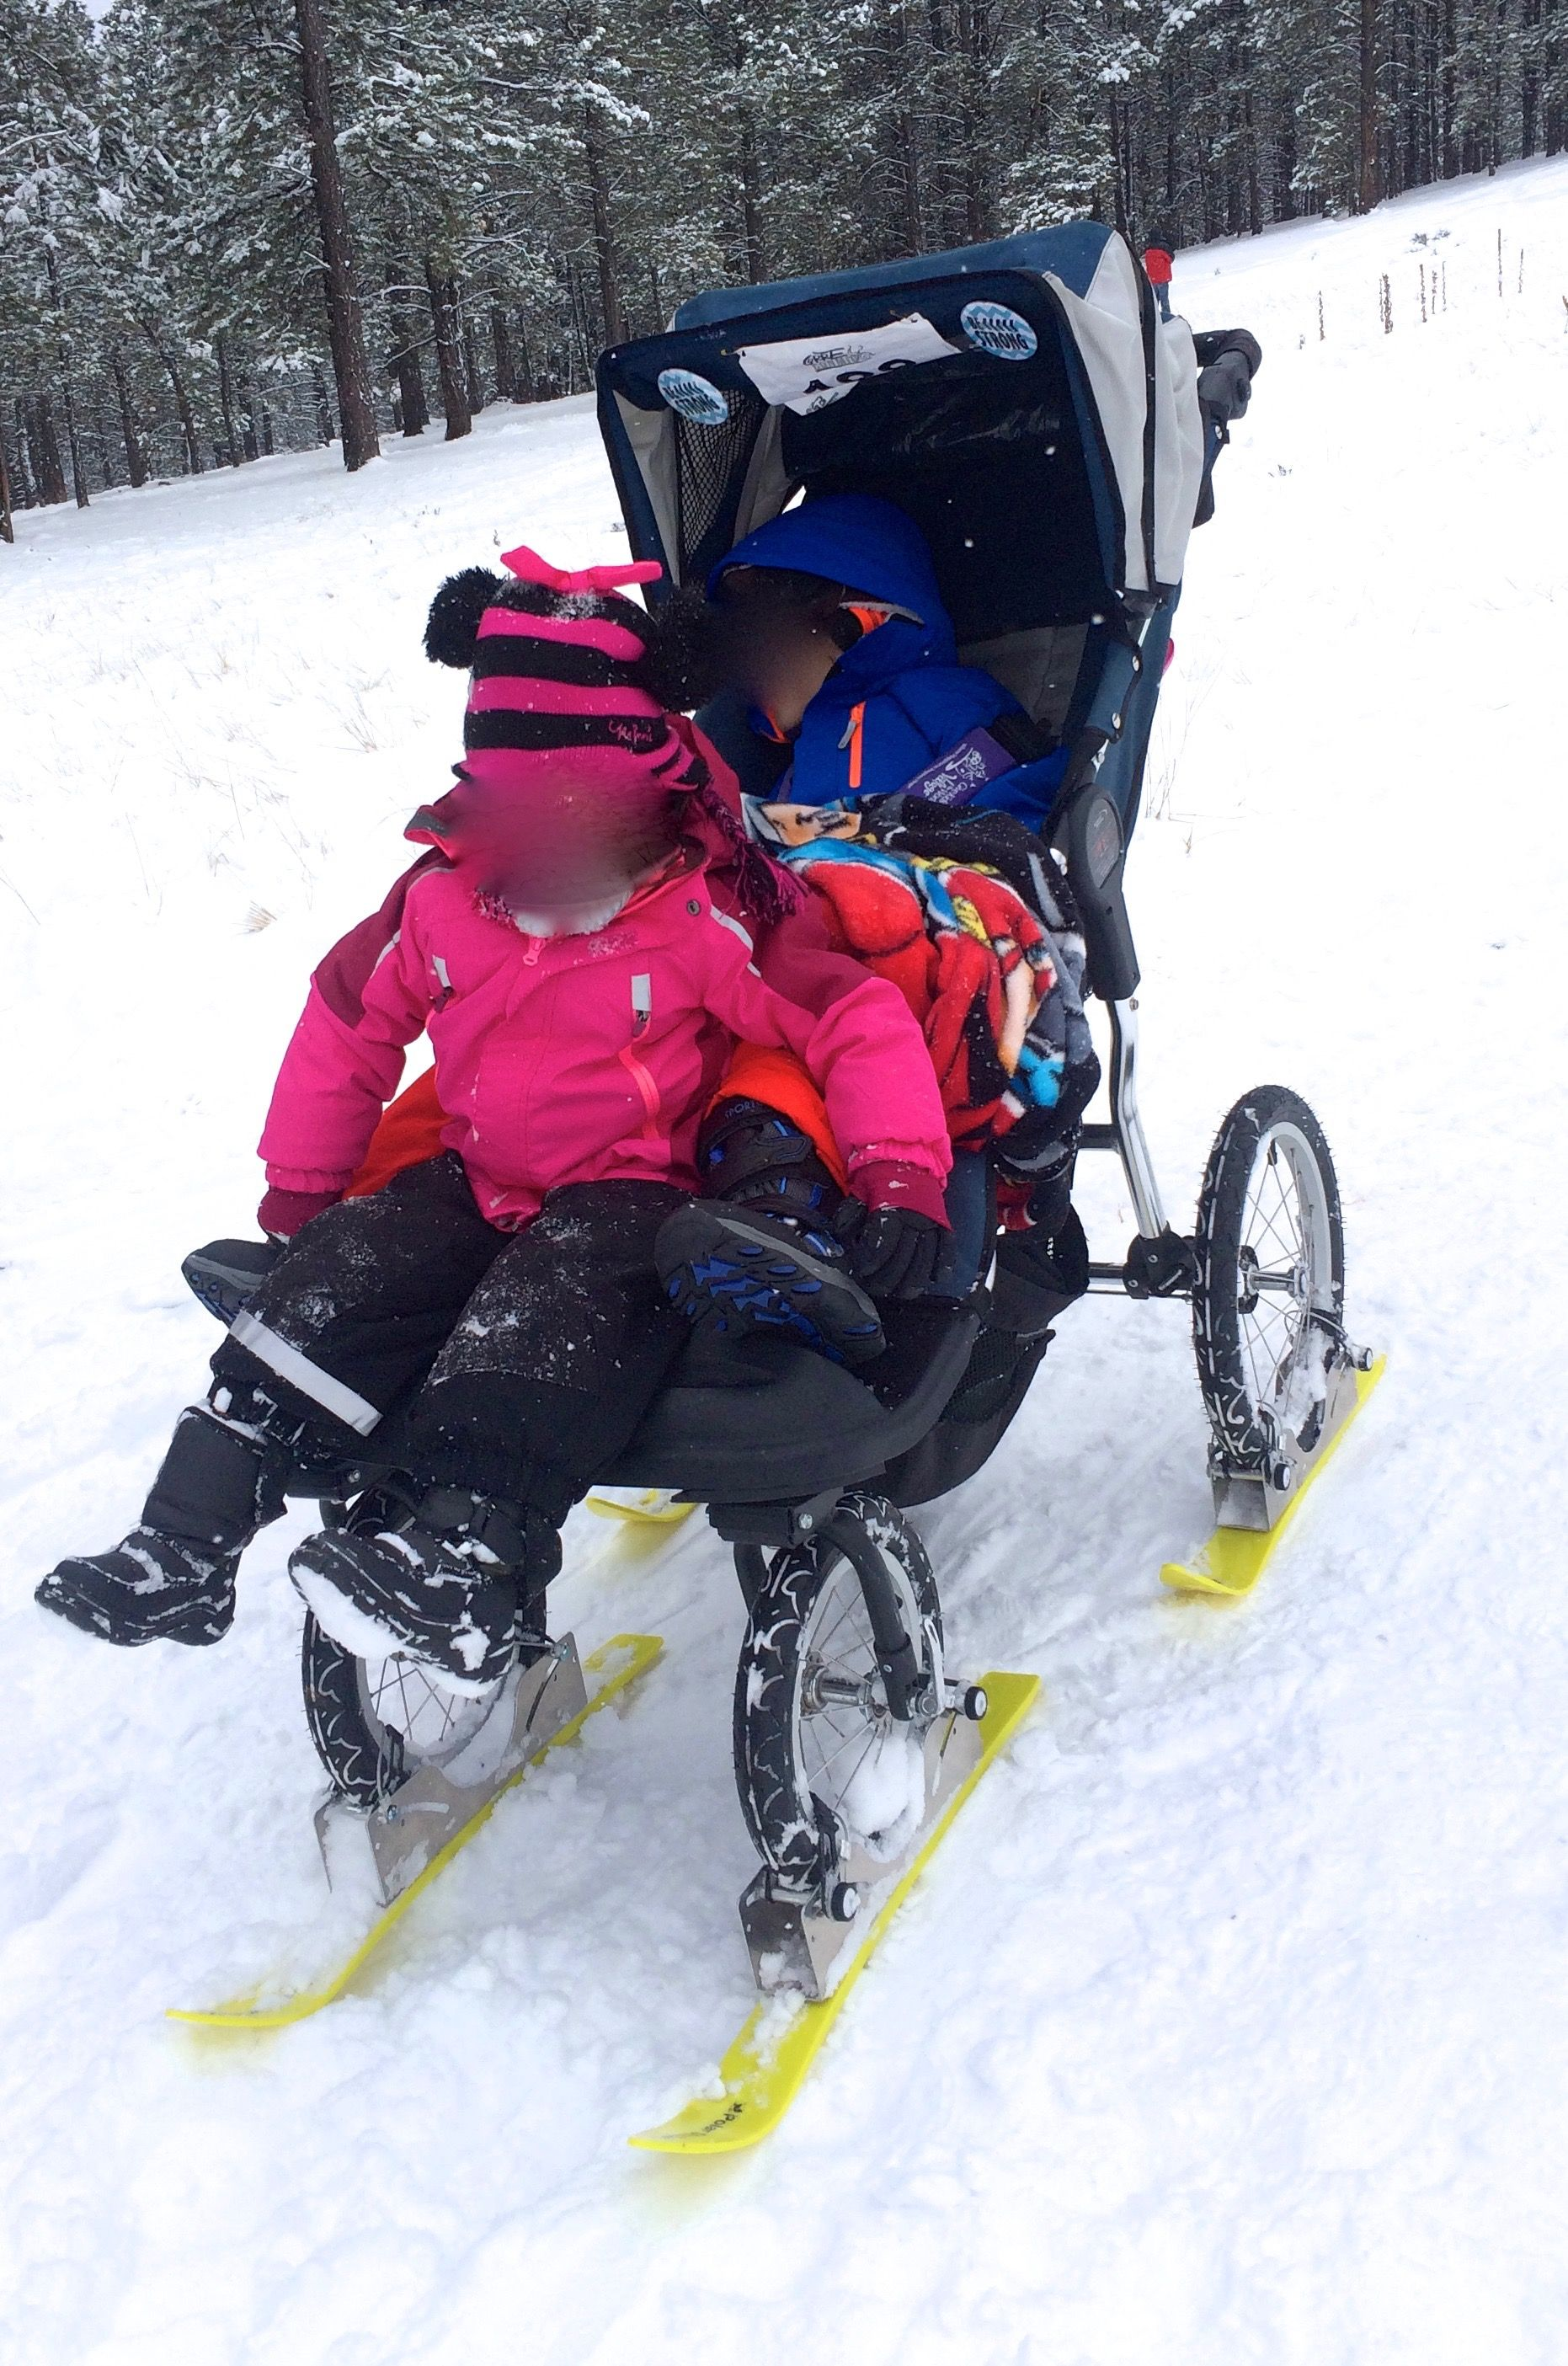 Adaptive needs stroller fit for winter adventures, with